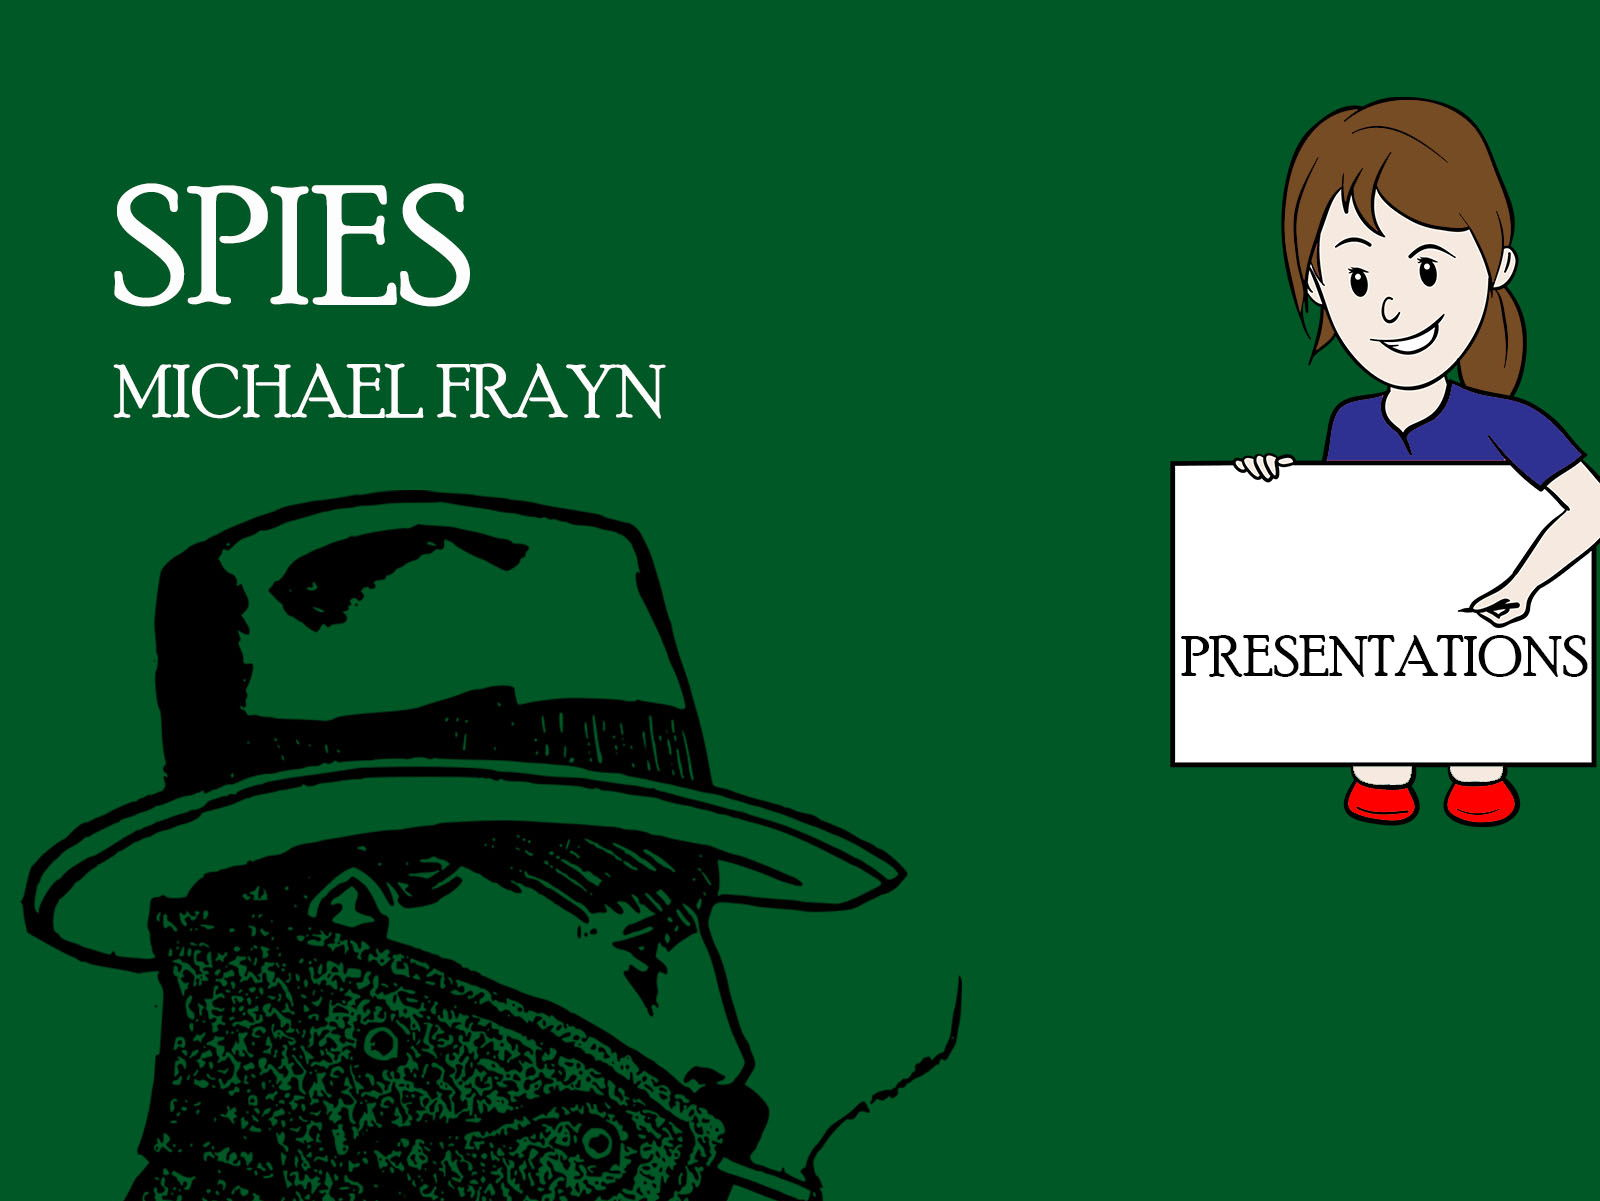 analyzing spies by michael frayn Spies study guide contains a biography of michael frayn, literature essays, quiz questions, major themes, characters, and a full summary and analysis about spies spies summary.